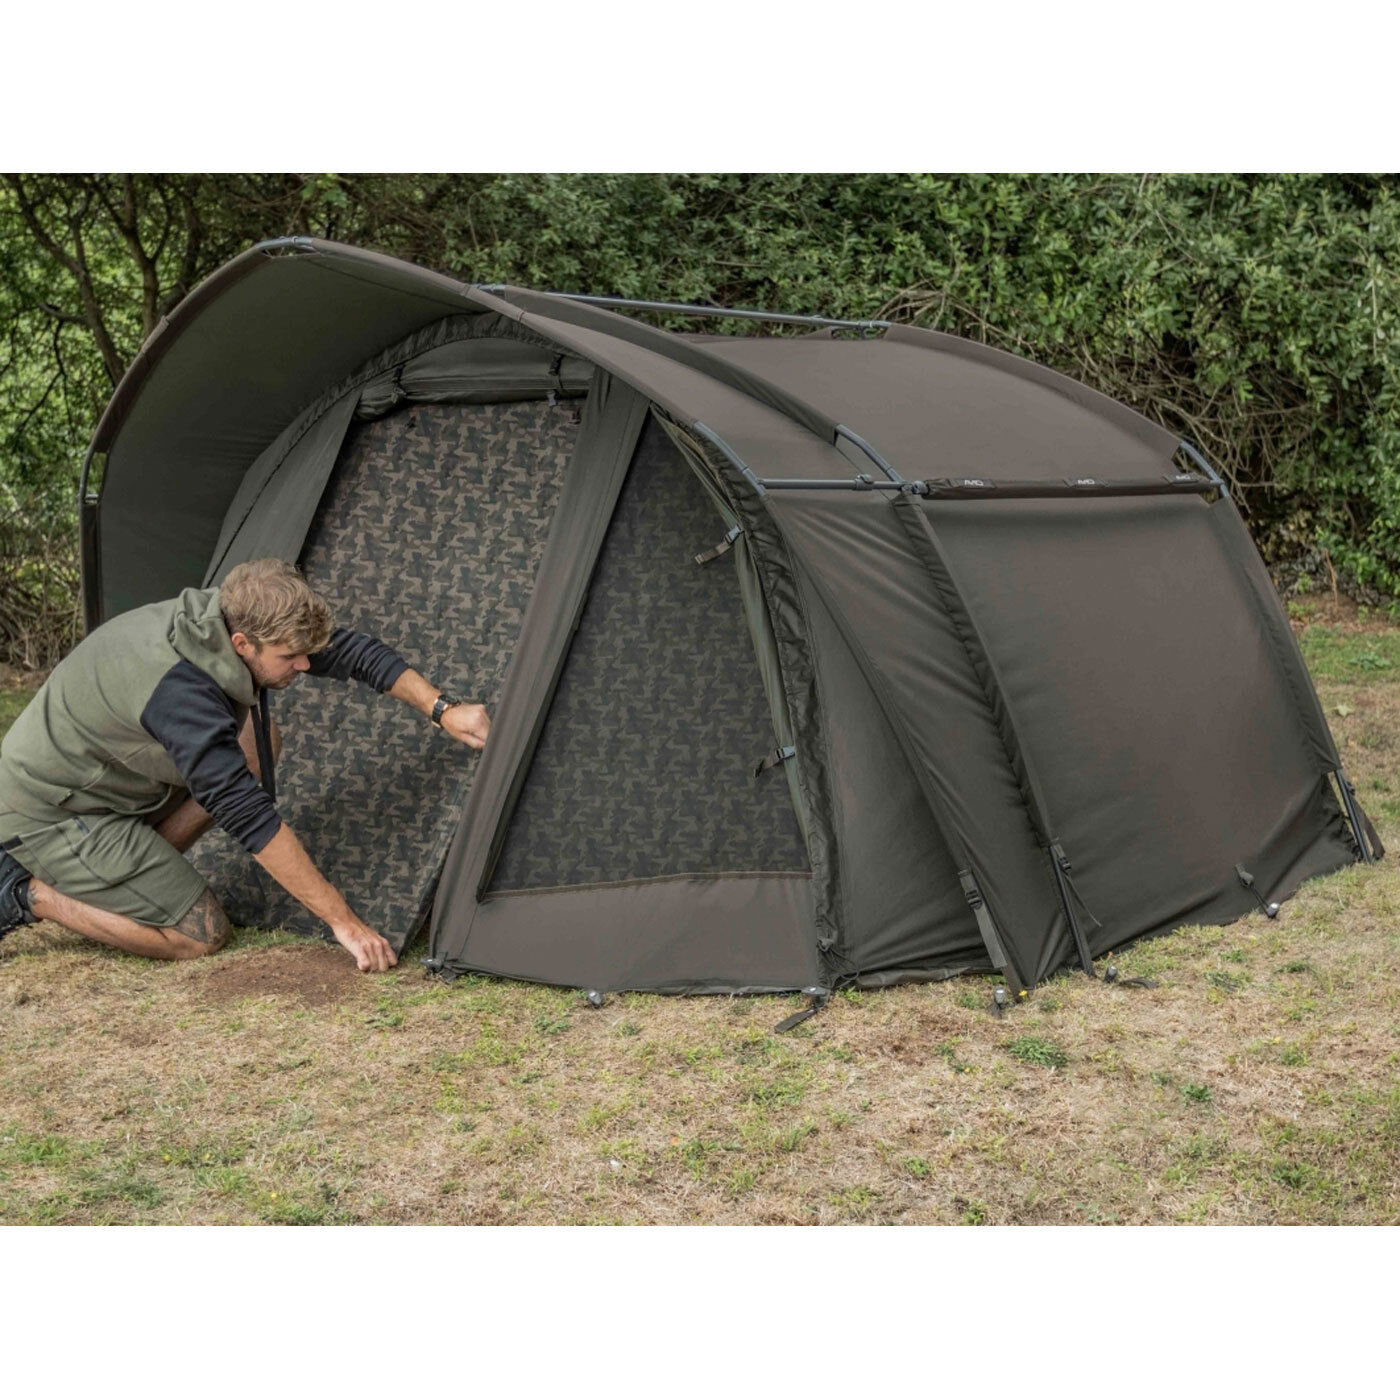 Avid HQ Dual Layer Bivvy - Two Man New 2019 - Free Delivery